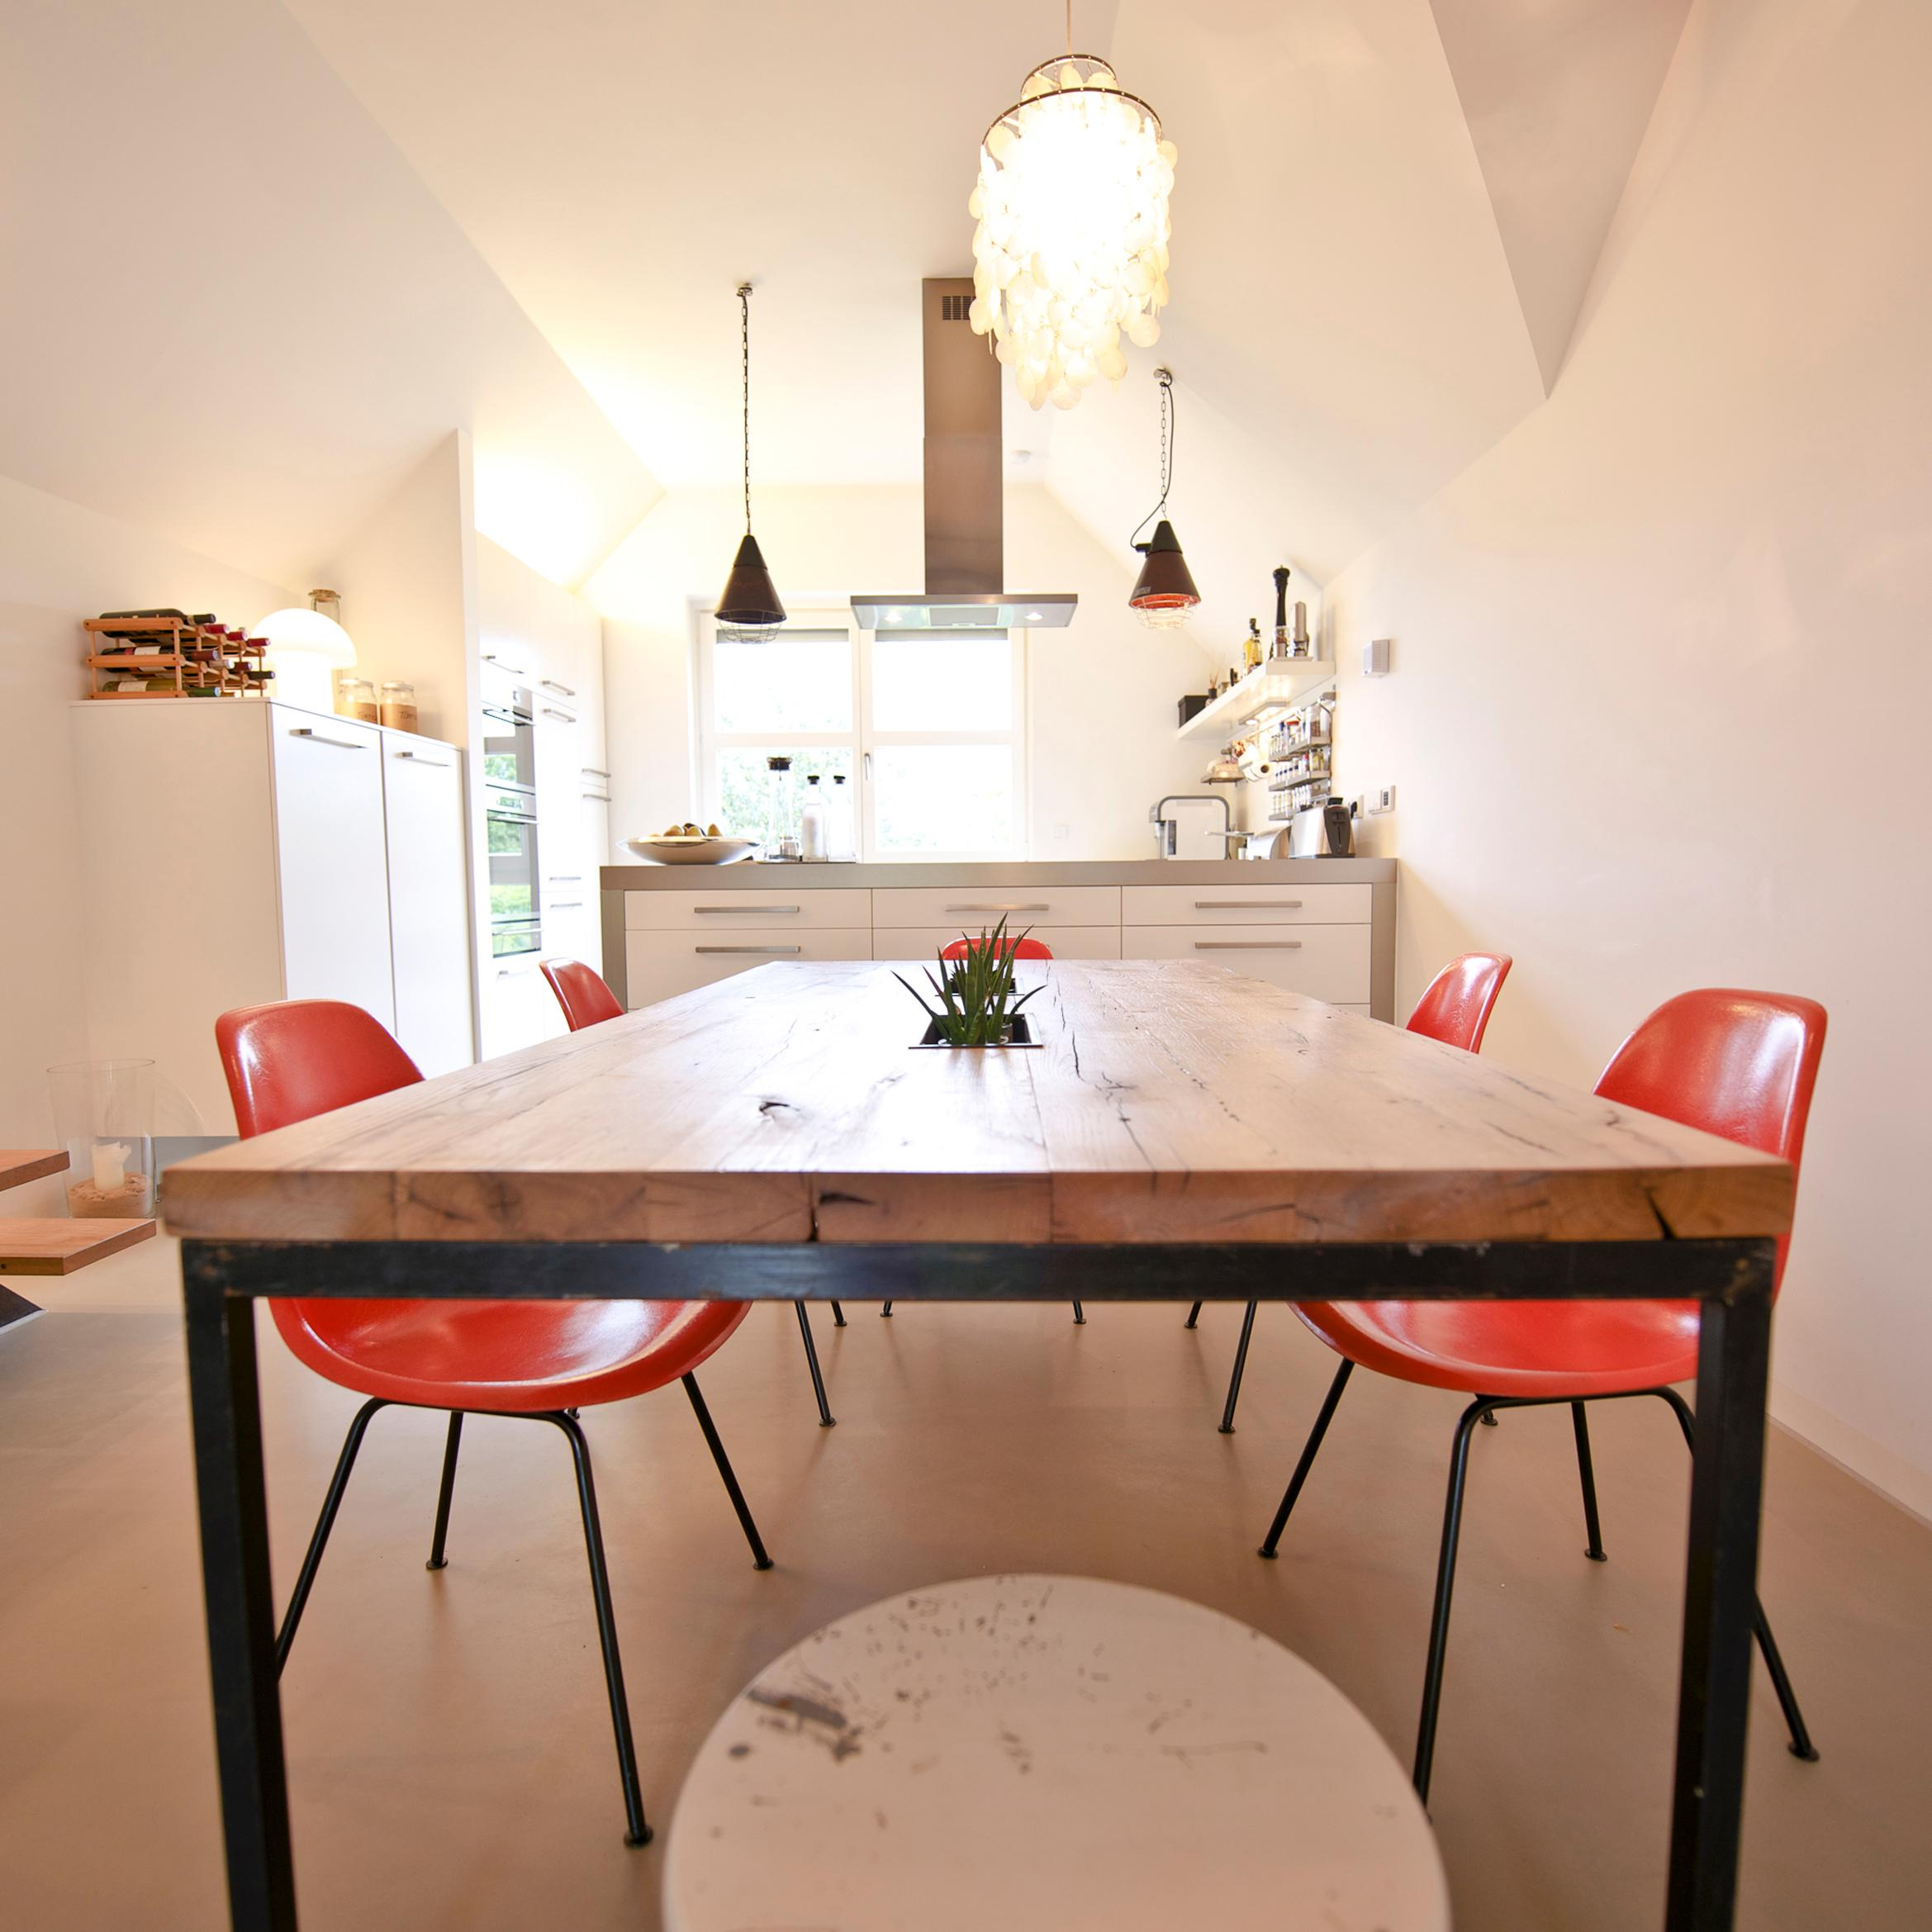 Alte orange Eames-Chairs #esstisch ©Zolaproduction